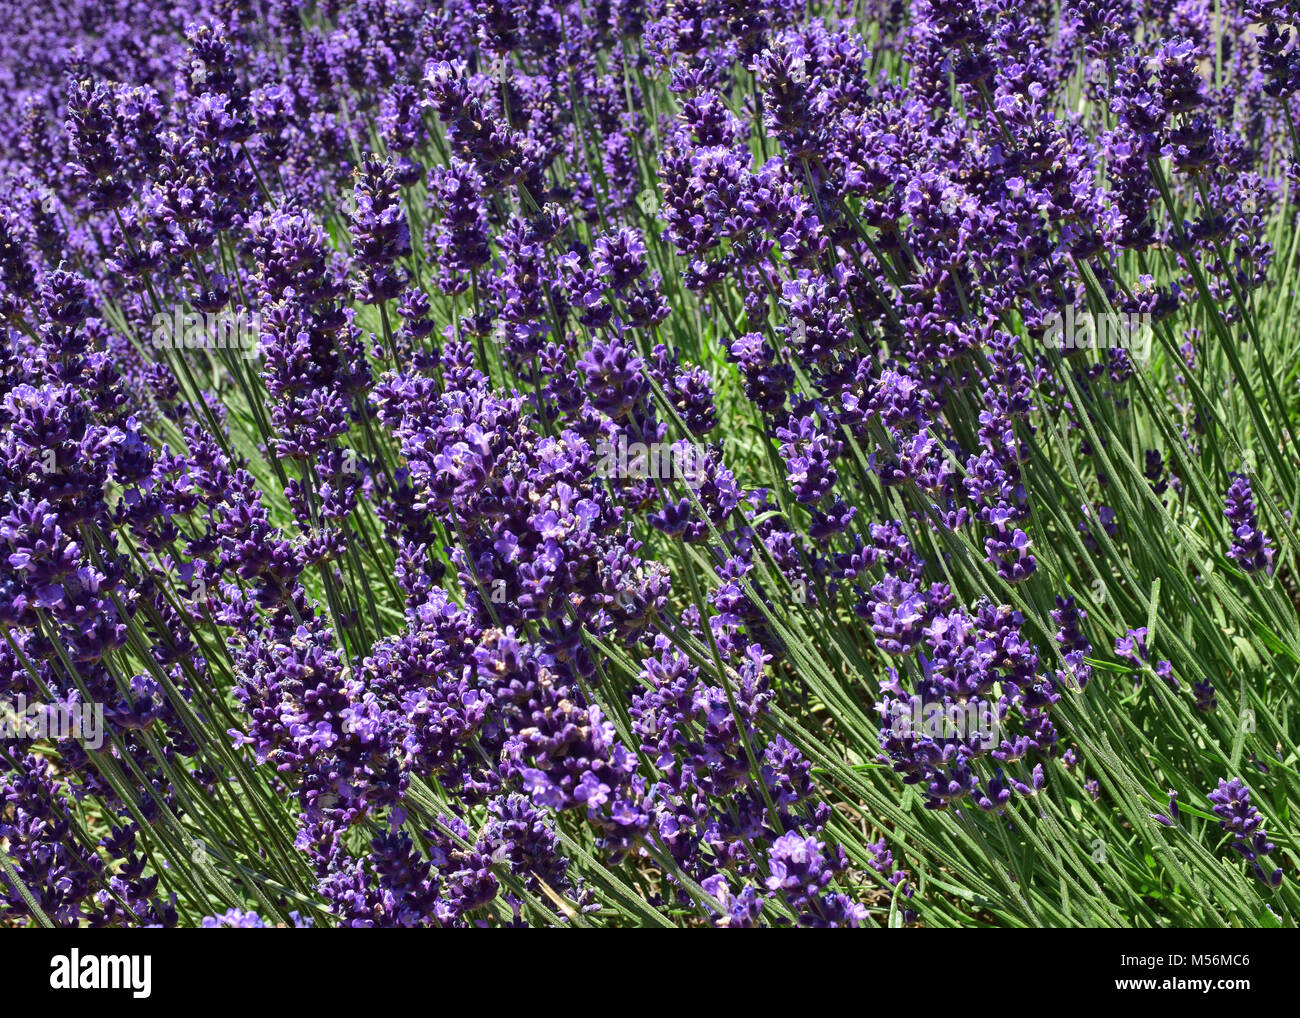 Close up ultra violet lavender blooming in a field. Lavandula angustifolia. Natural look. - Stock Image